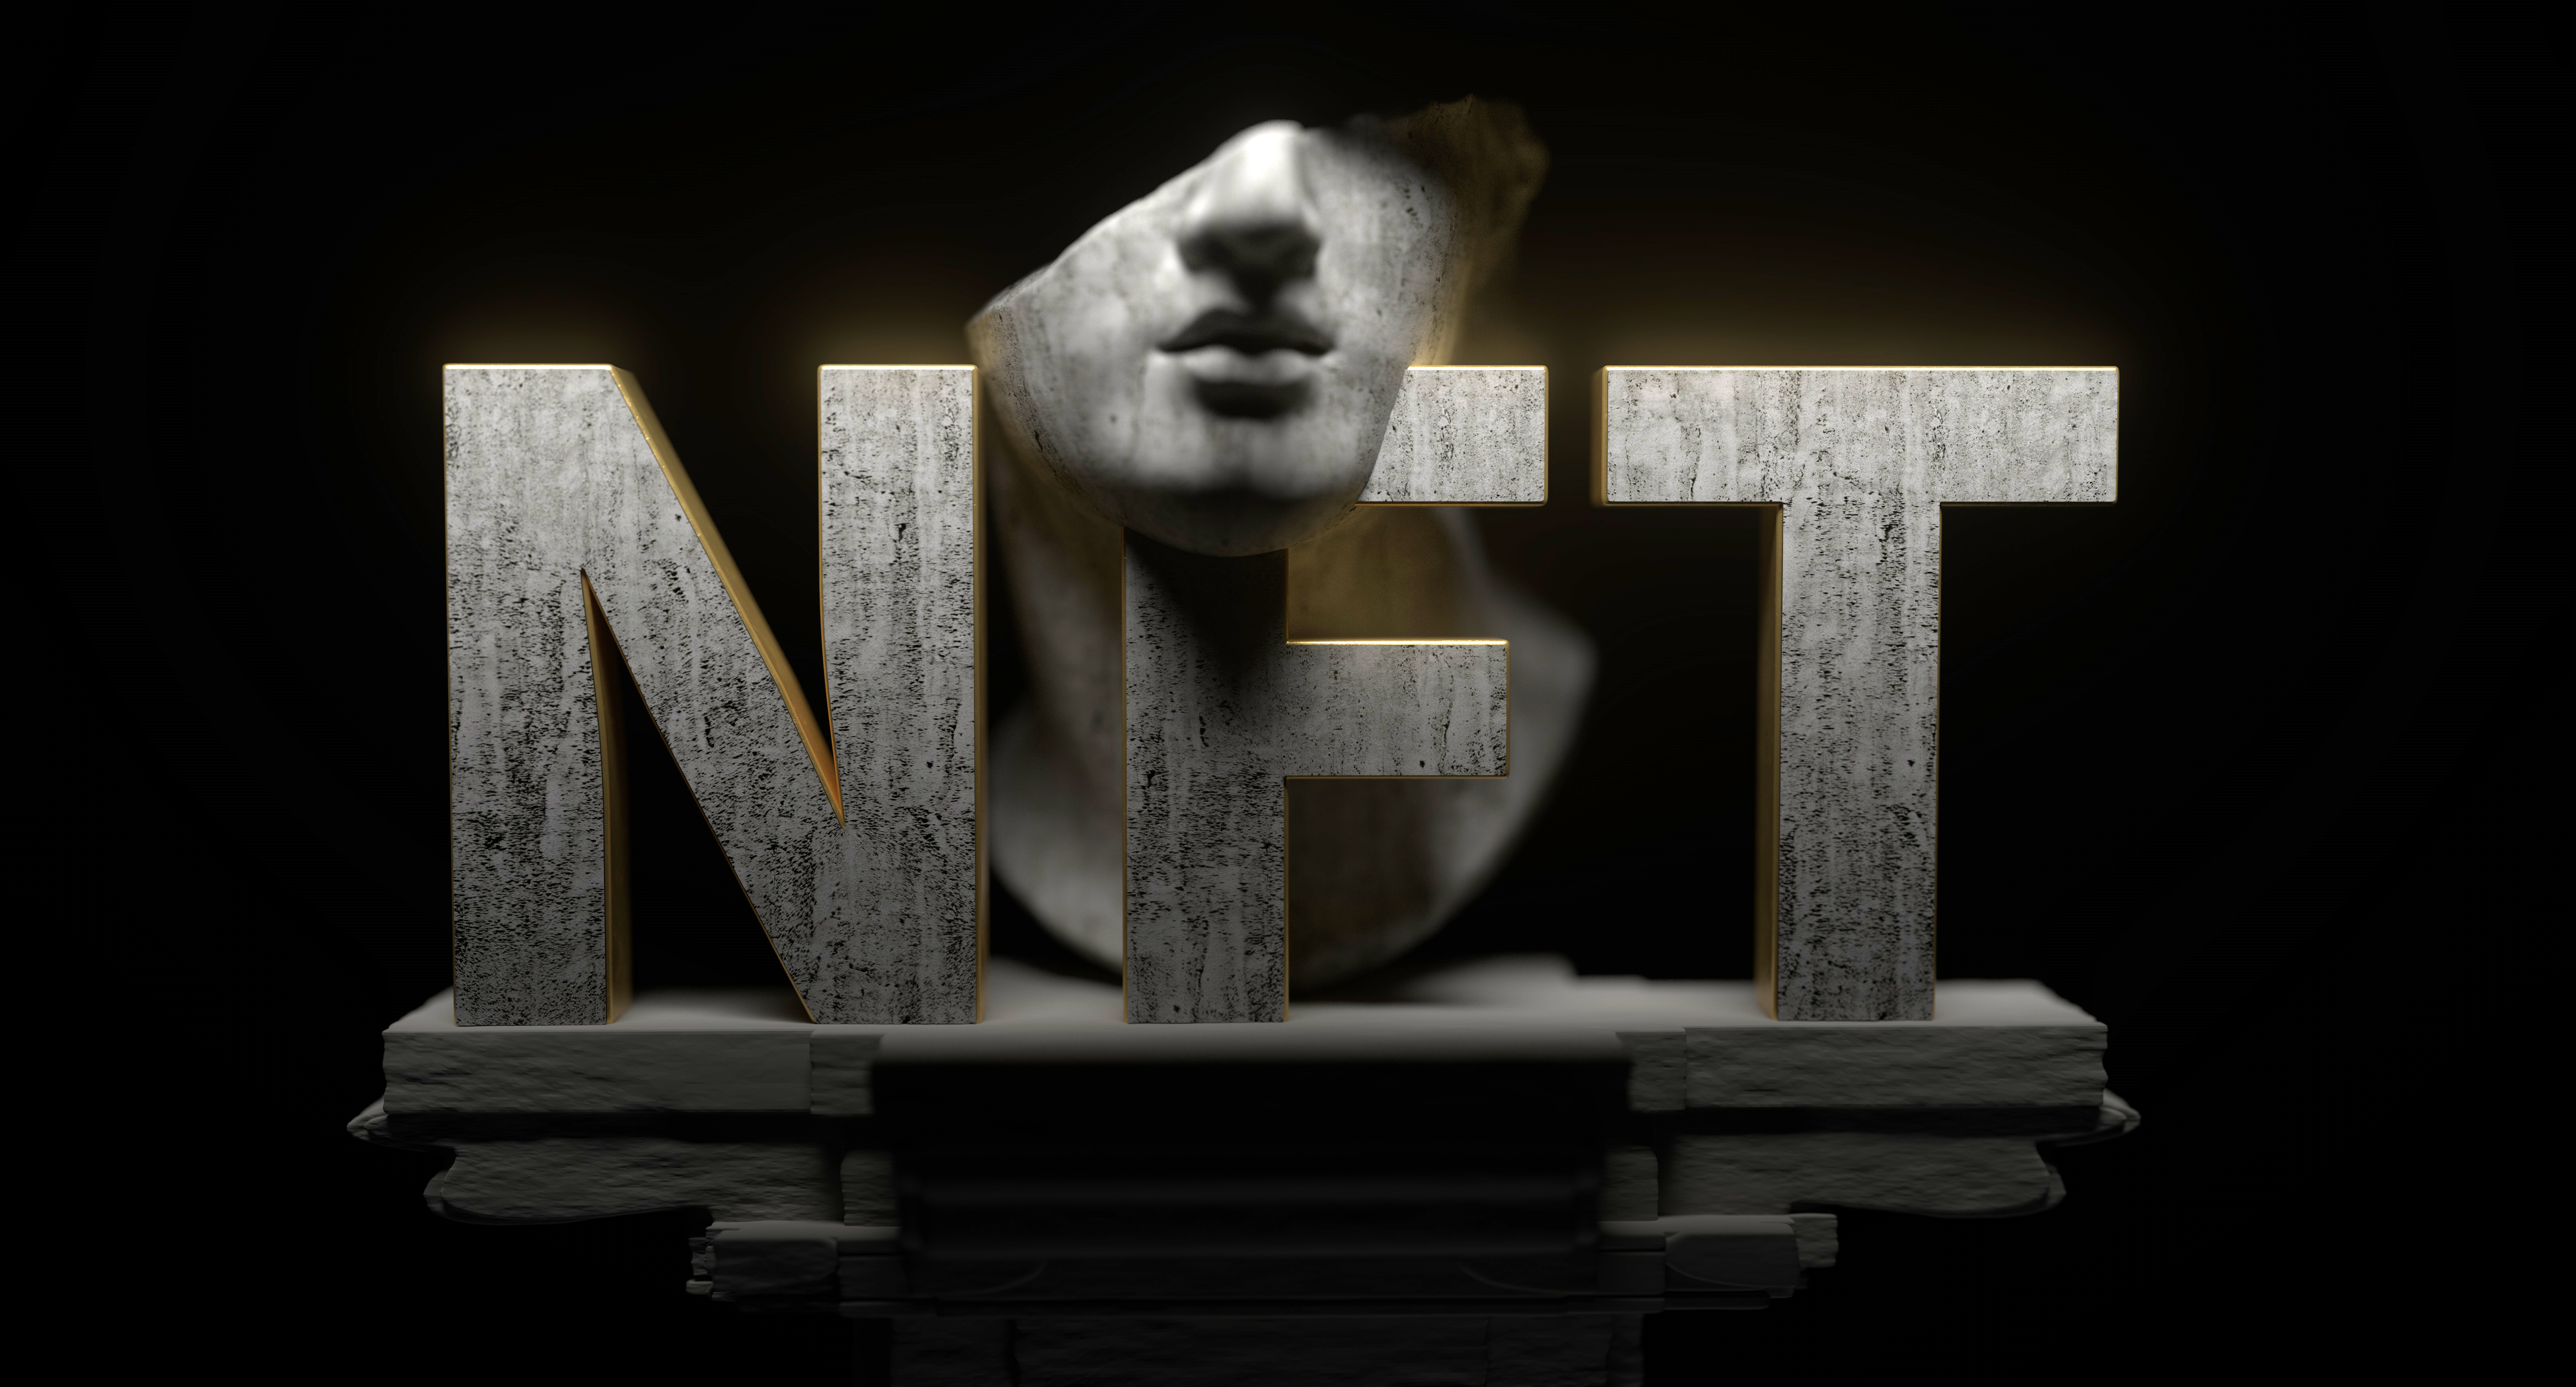 'Art in Motion' Brings NFTs To NYC, Turning Iconic Penn Station into Largest Public Digital Art Sale